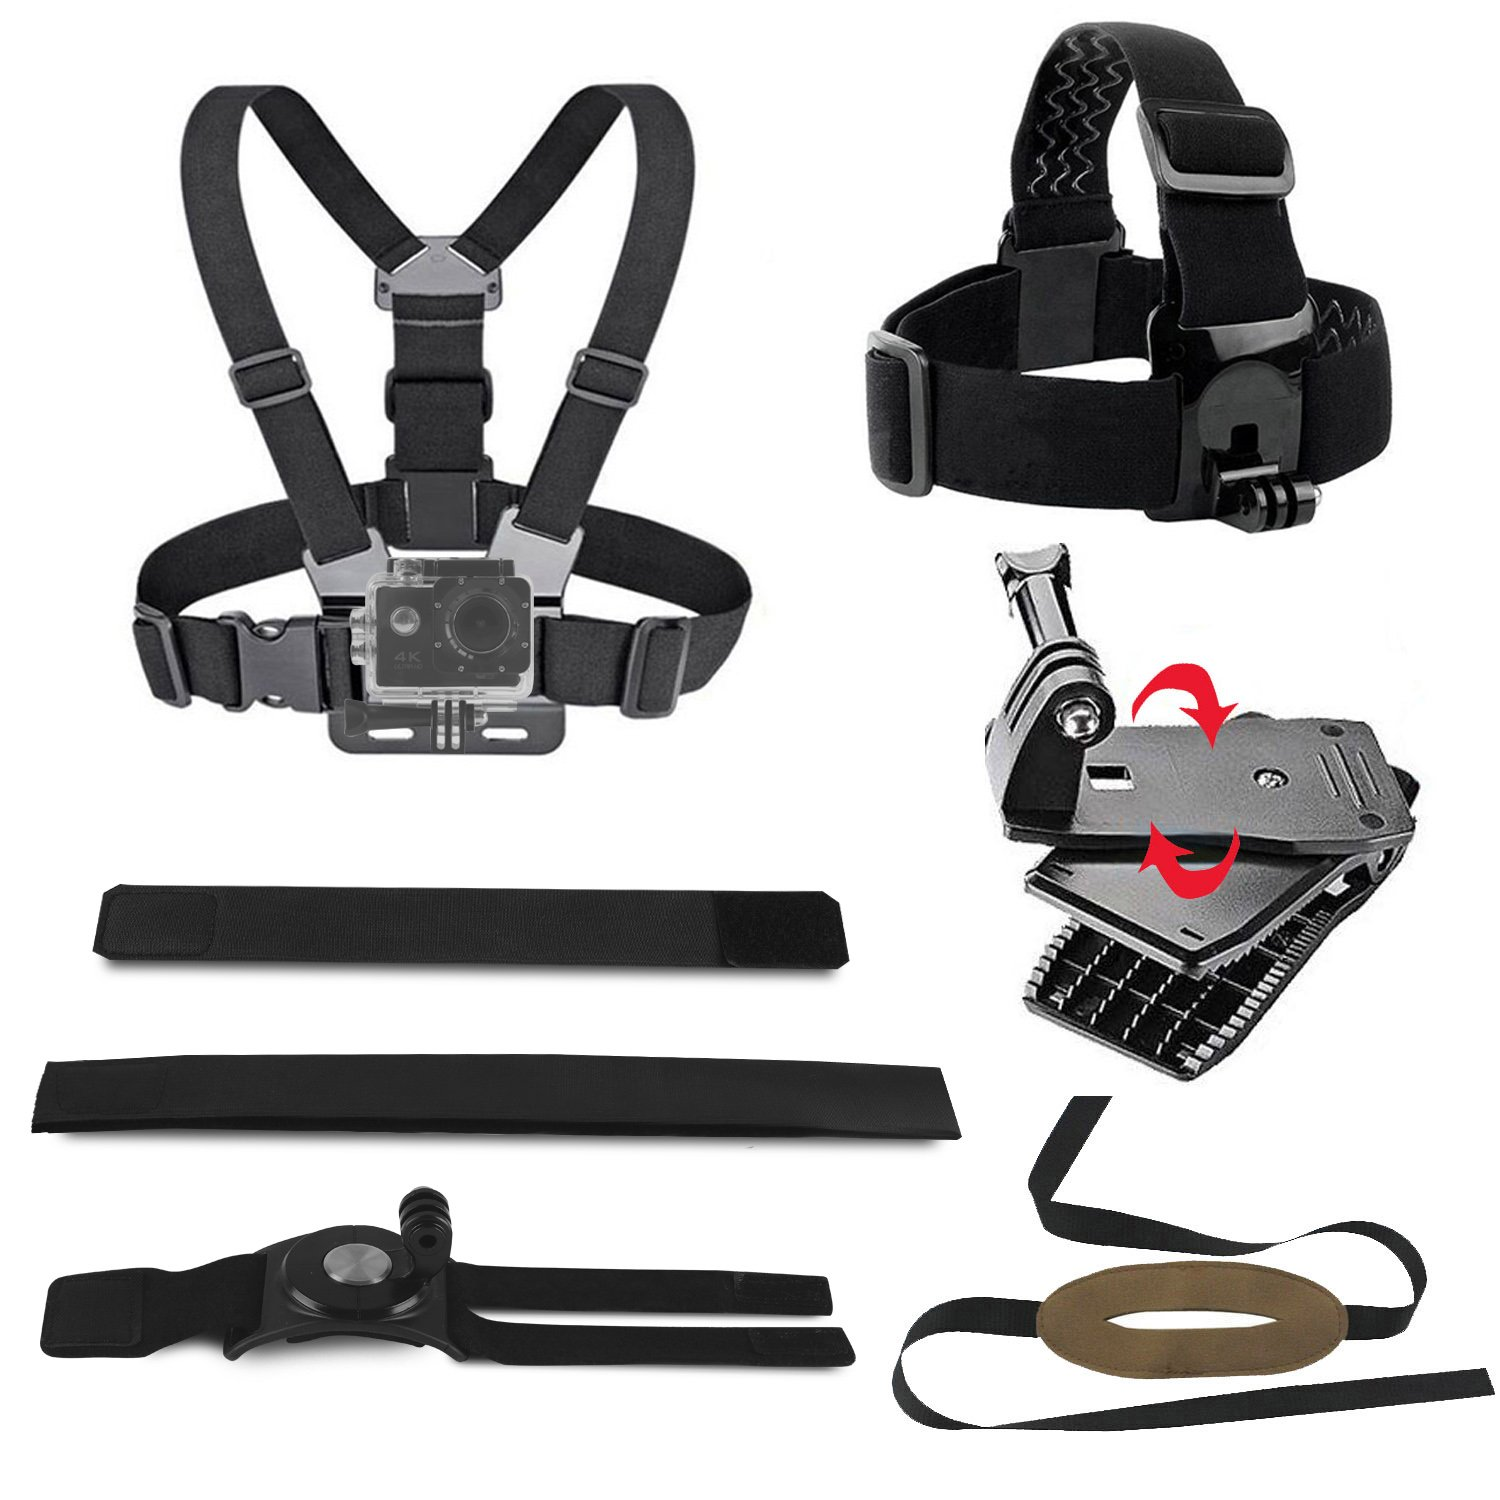 Chest Mount Harness for Gopro Action Camera Accessories Including Head Strap Mount Belt, 360-degree Rotating Arm/Wrist Strap Mount, Chest Mount Harness for GoPro Hero 6/5/4 Session Sports Camera